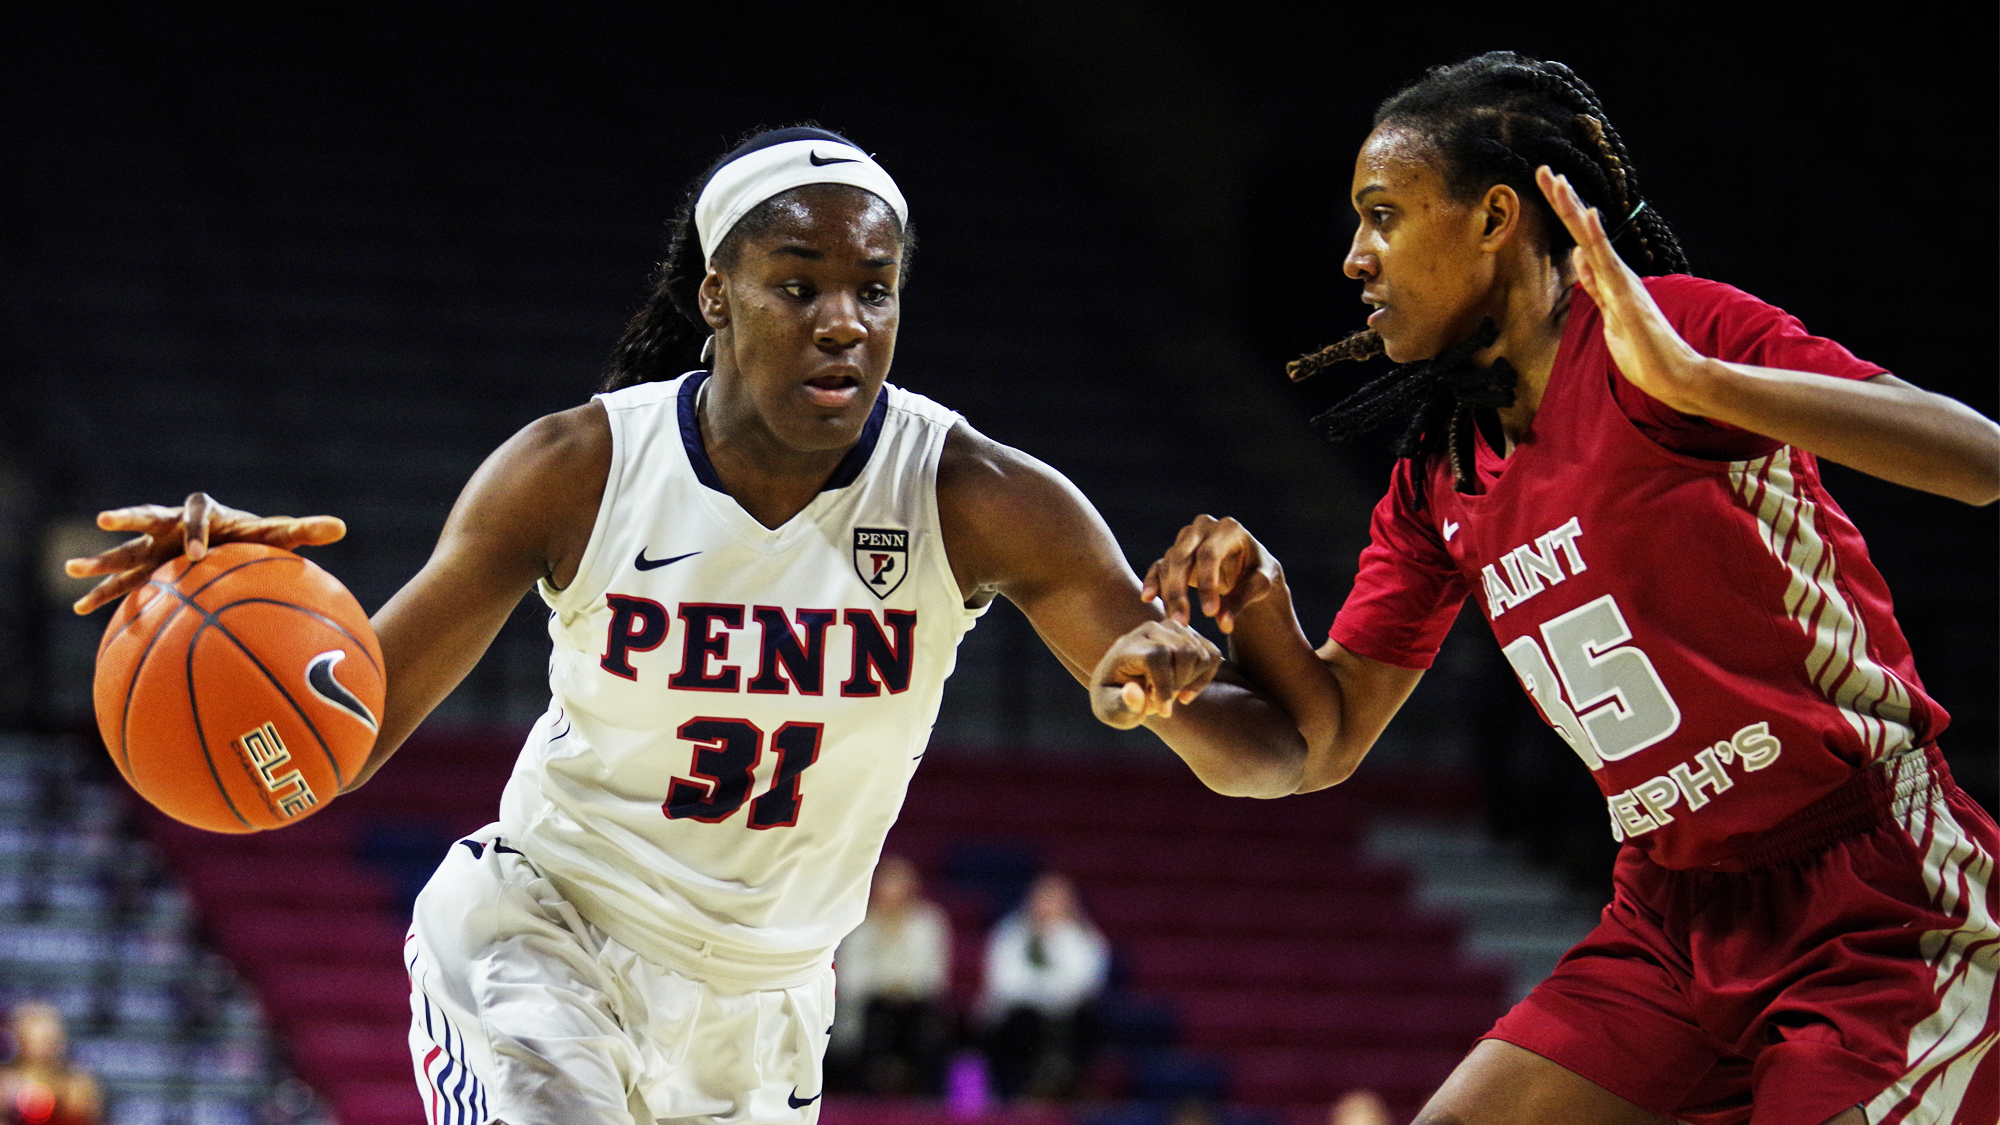 sports shoes 52079 54599 Women's basketball team sails past Saint Joseph's | Penn Today